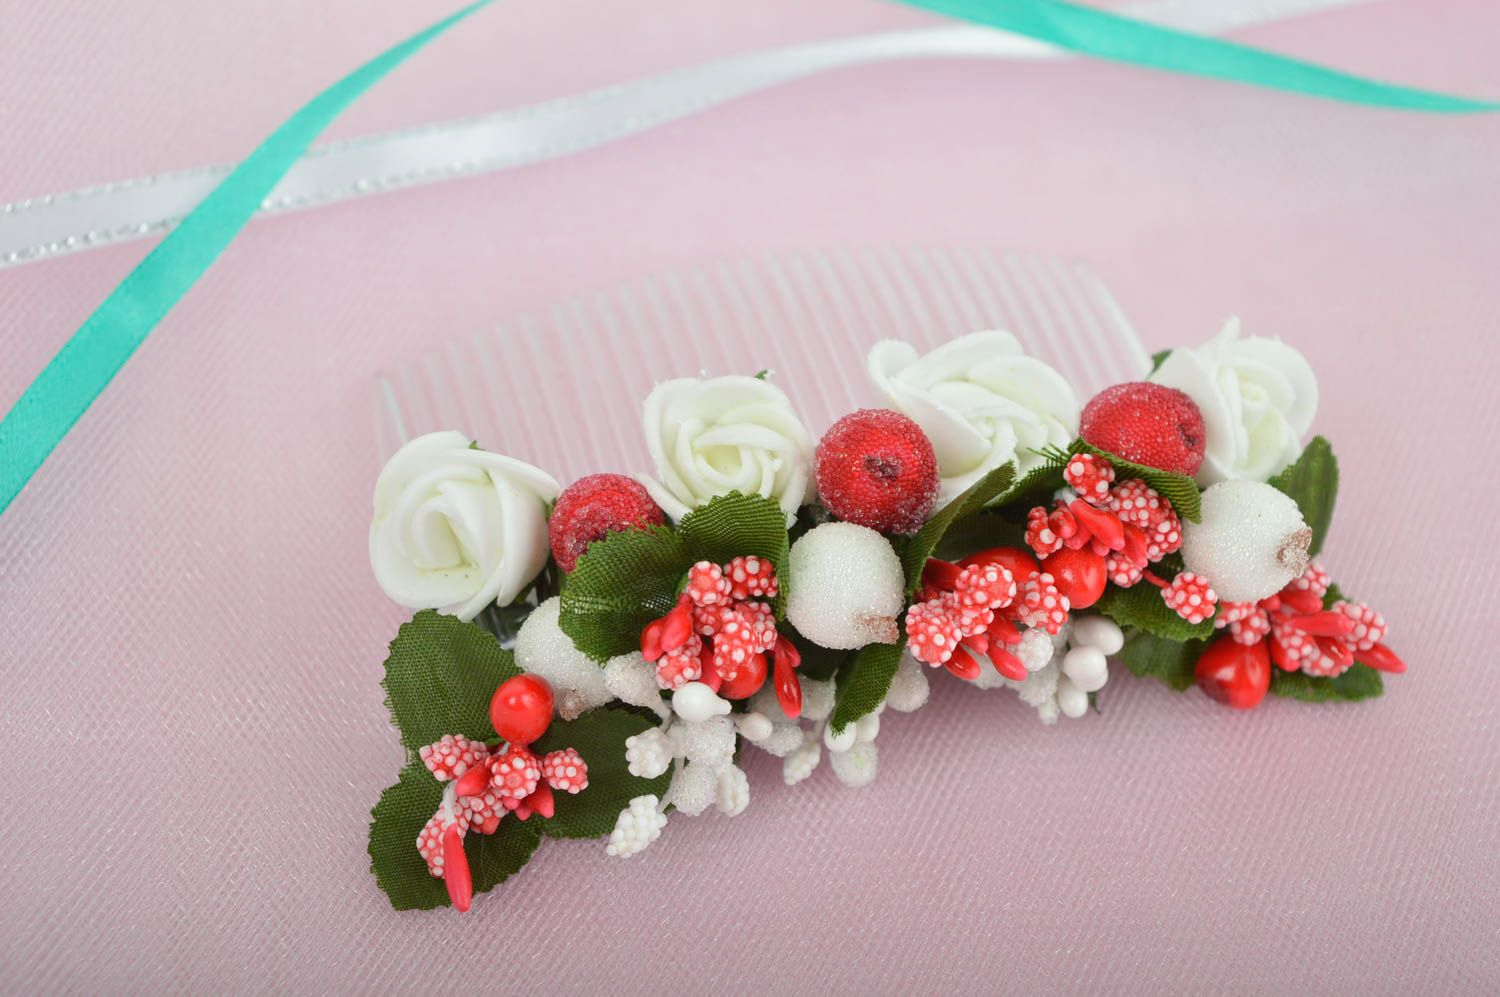 Handmade hair comb flower comb for hair gift ideas designer hair accessory photo 1